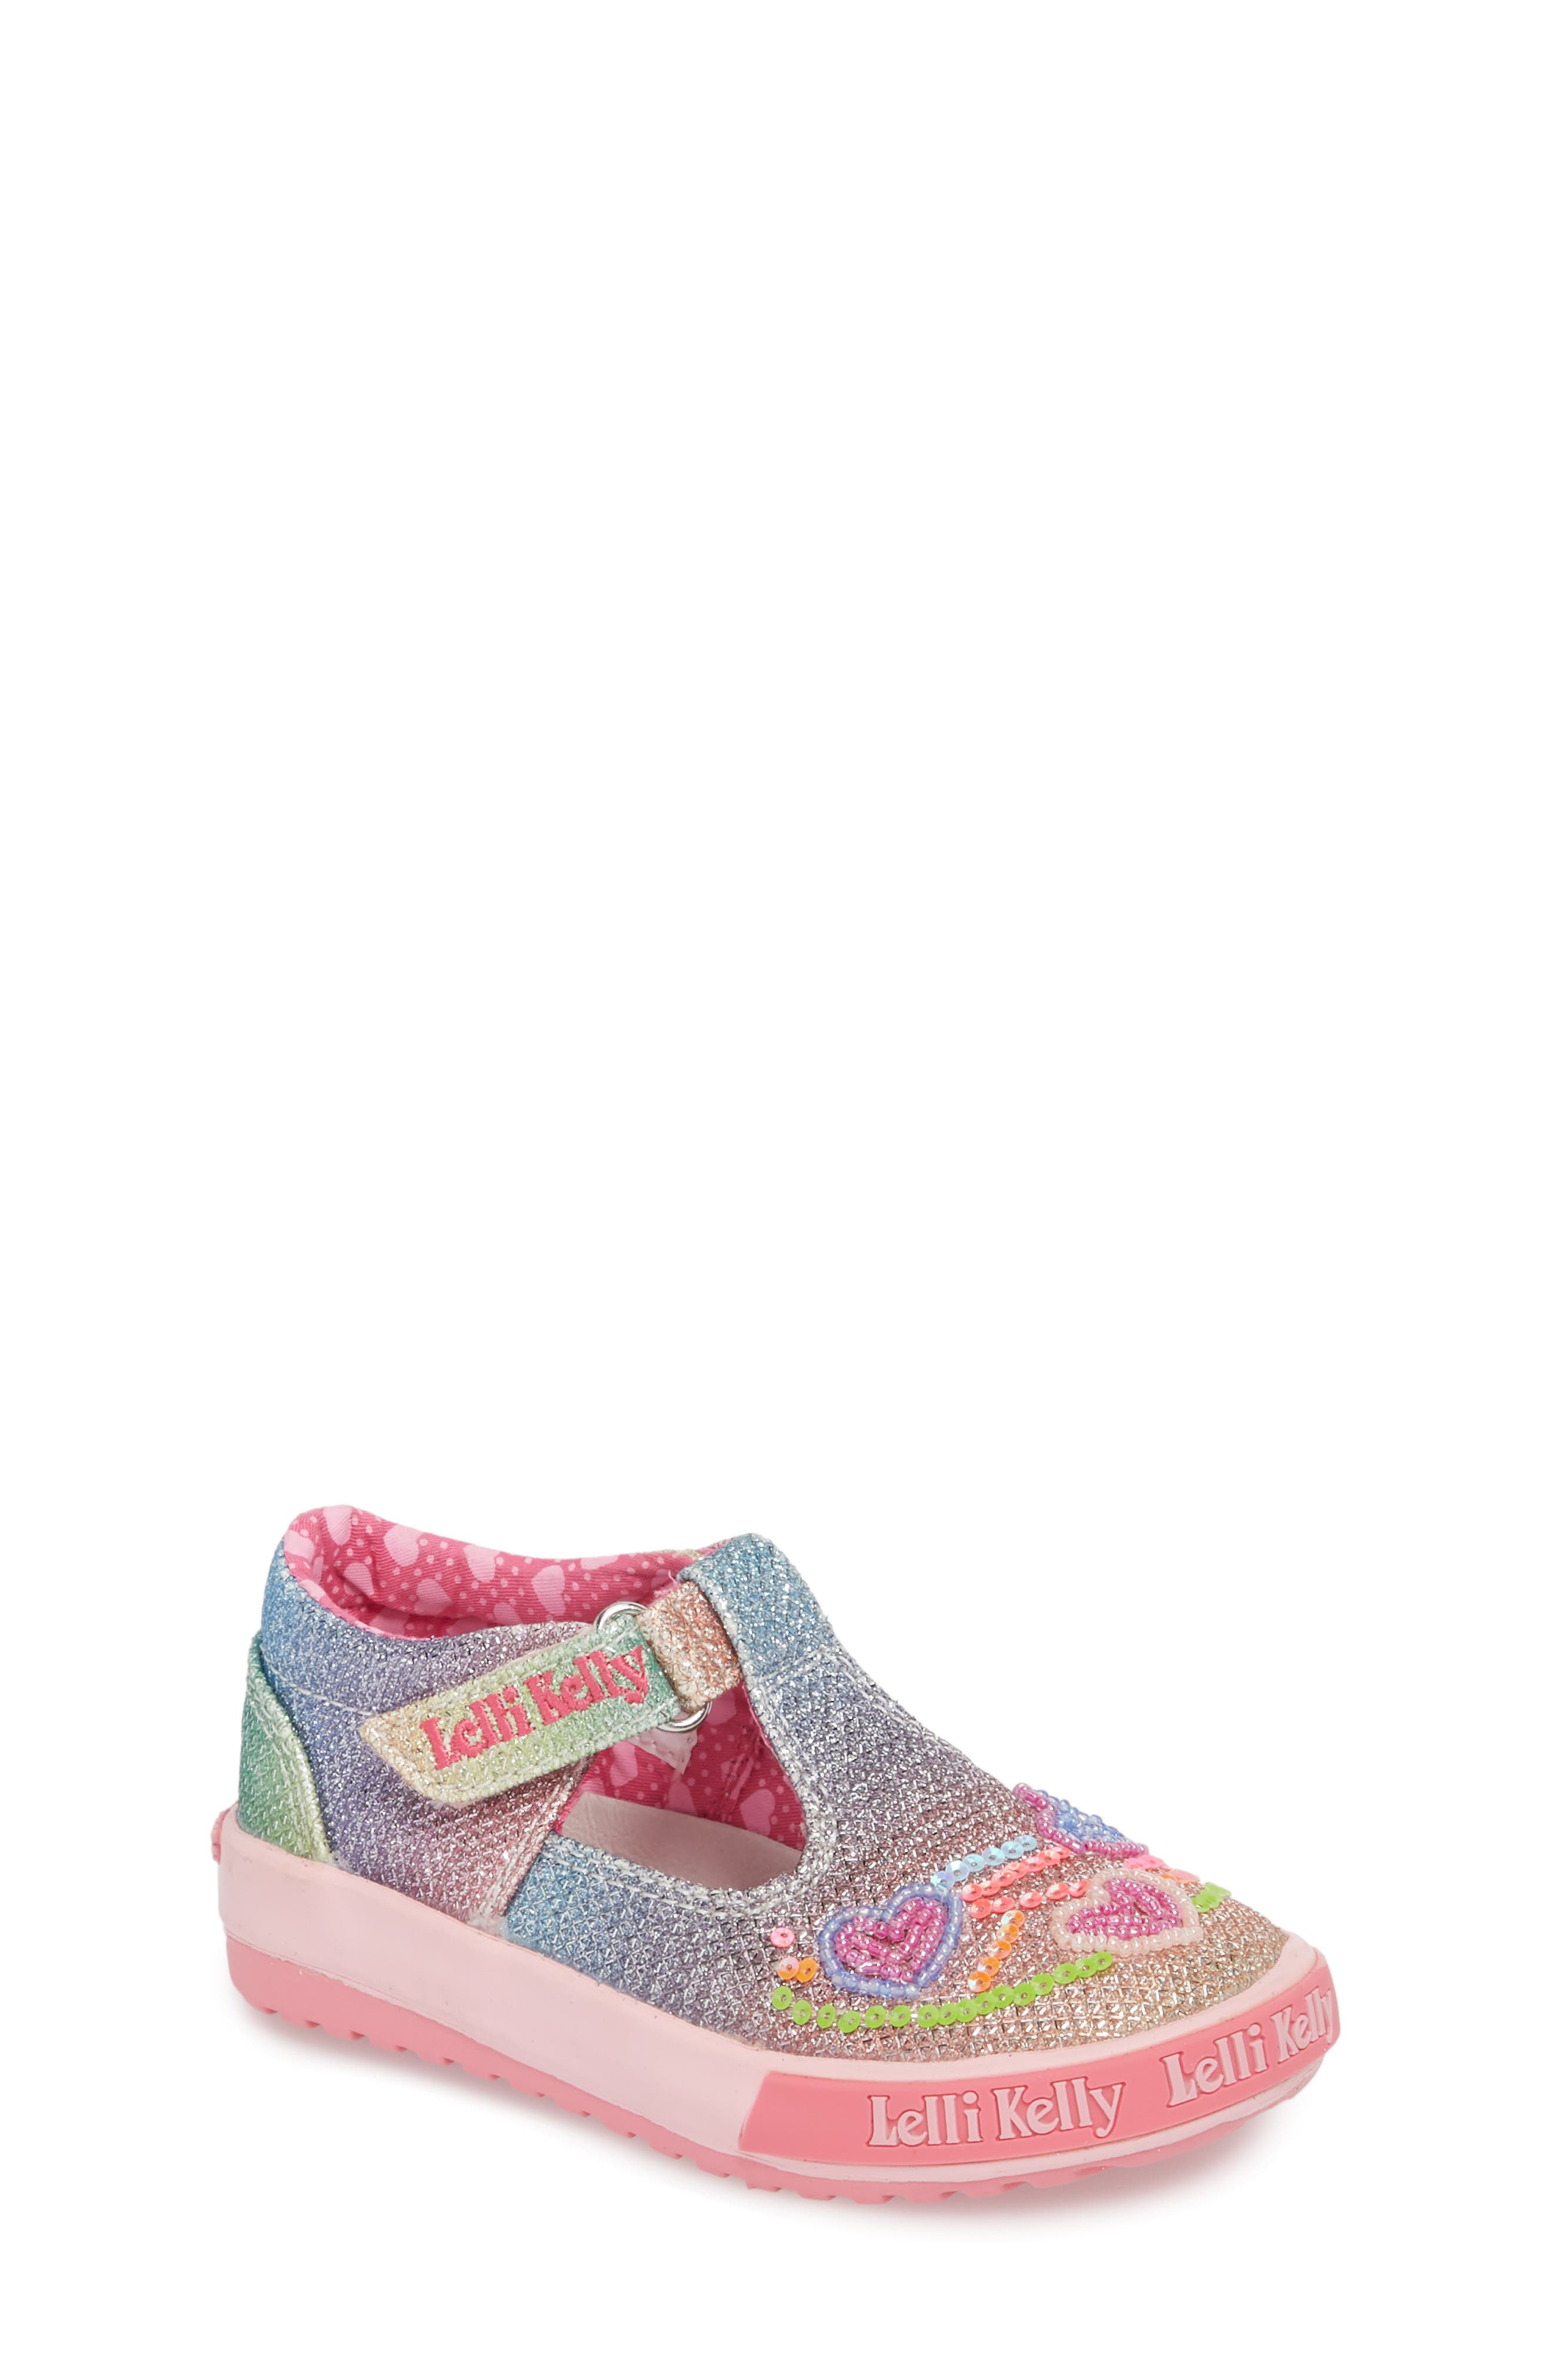 Lelli Kelly Glitter Metallic T-Strap Mary Jane (Baby, Walker & Toddler)